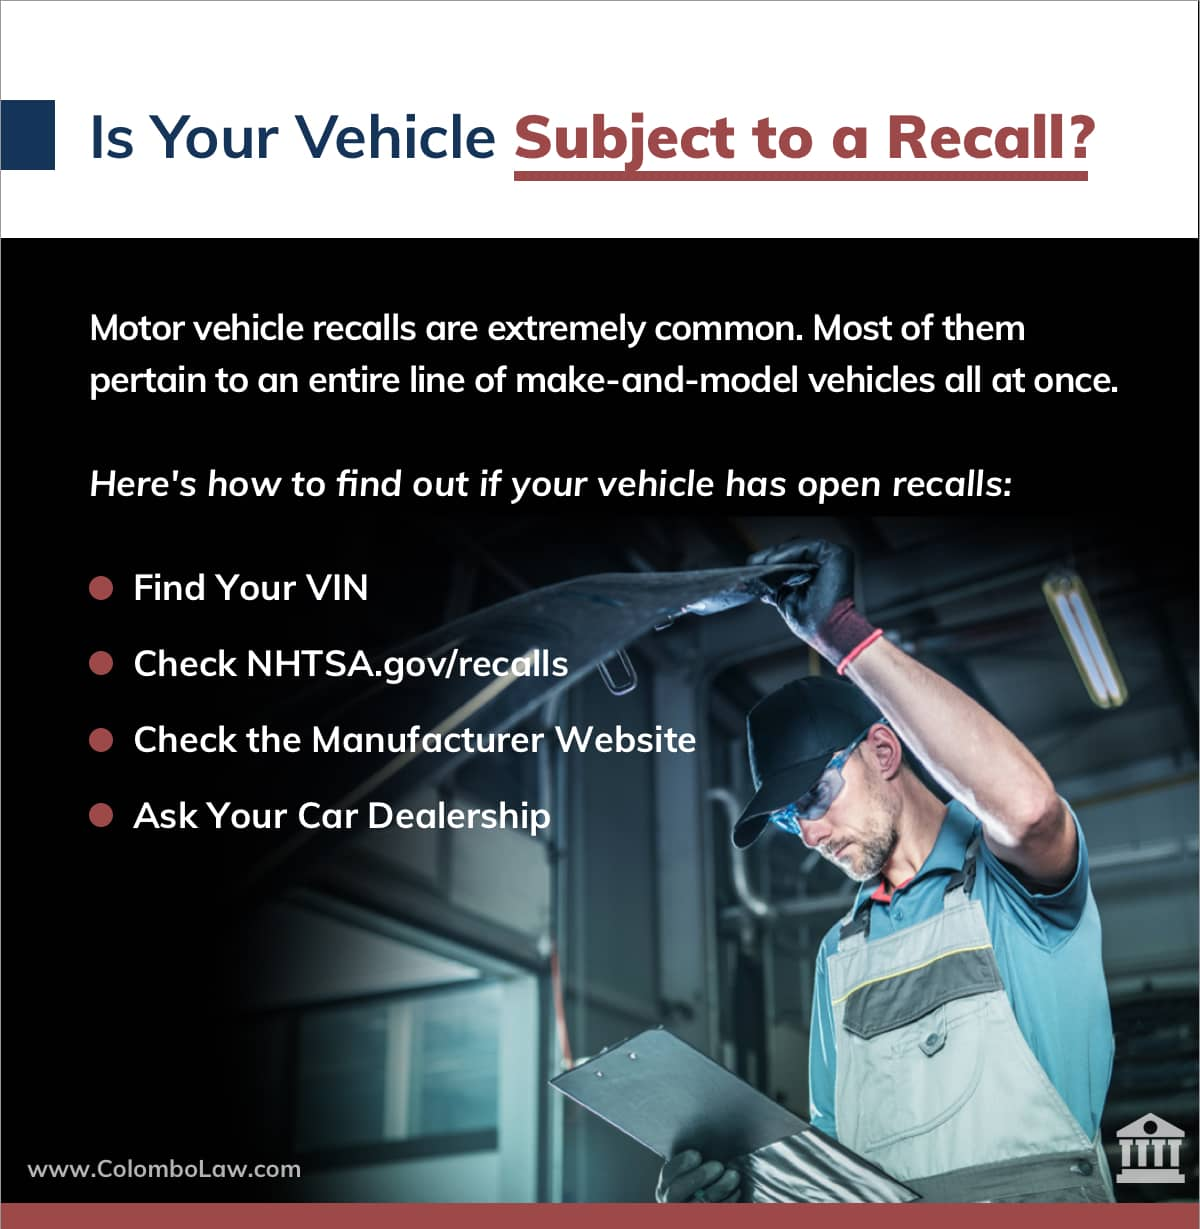 Is Your Vehicle Subject to a Recall? | Colombo Law